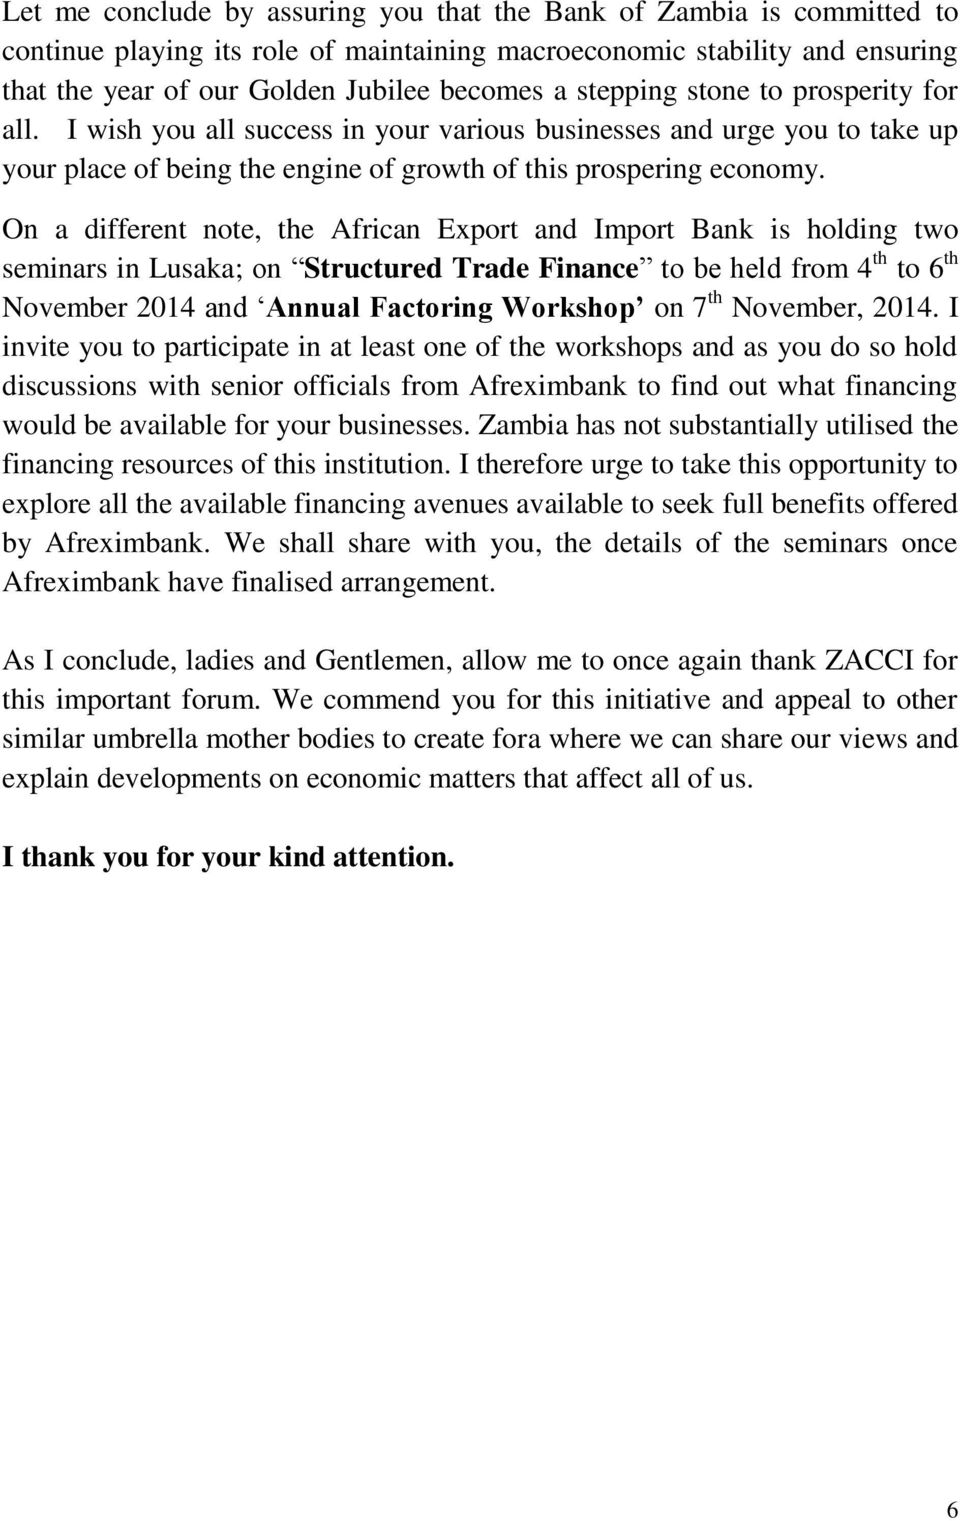 On a different note, the African Export and Import Bank is holding two seminars in Lusaka; on Structured Trade Finance to be held from 4 th to 6 th November 2014 and Annual Factoring Workshop on 7 th